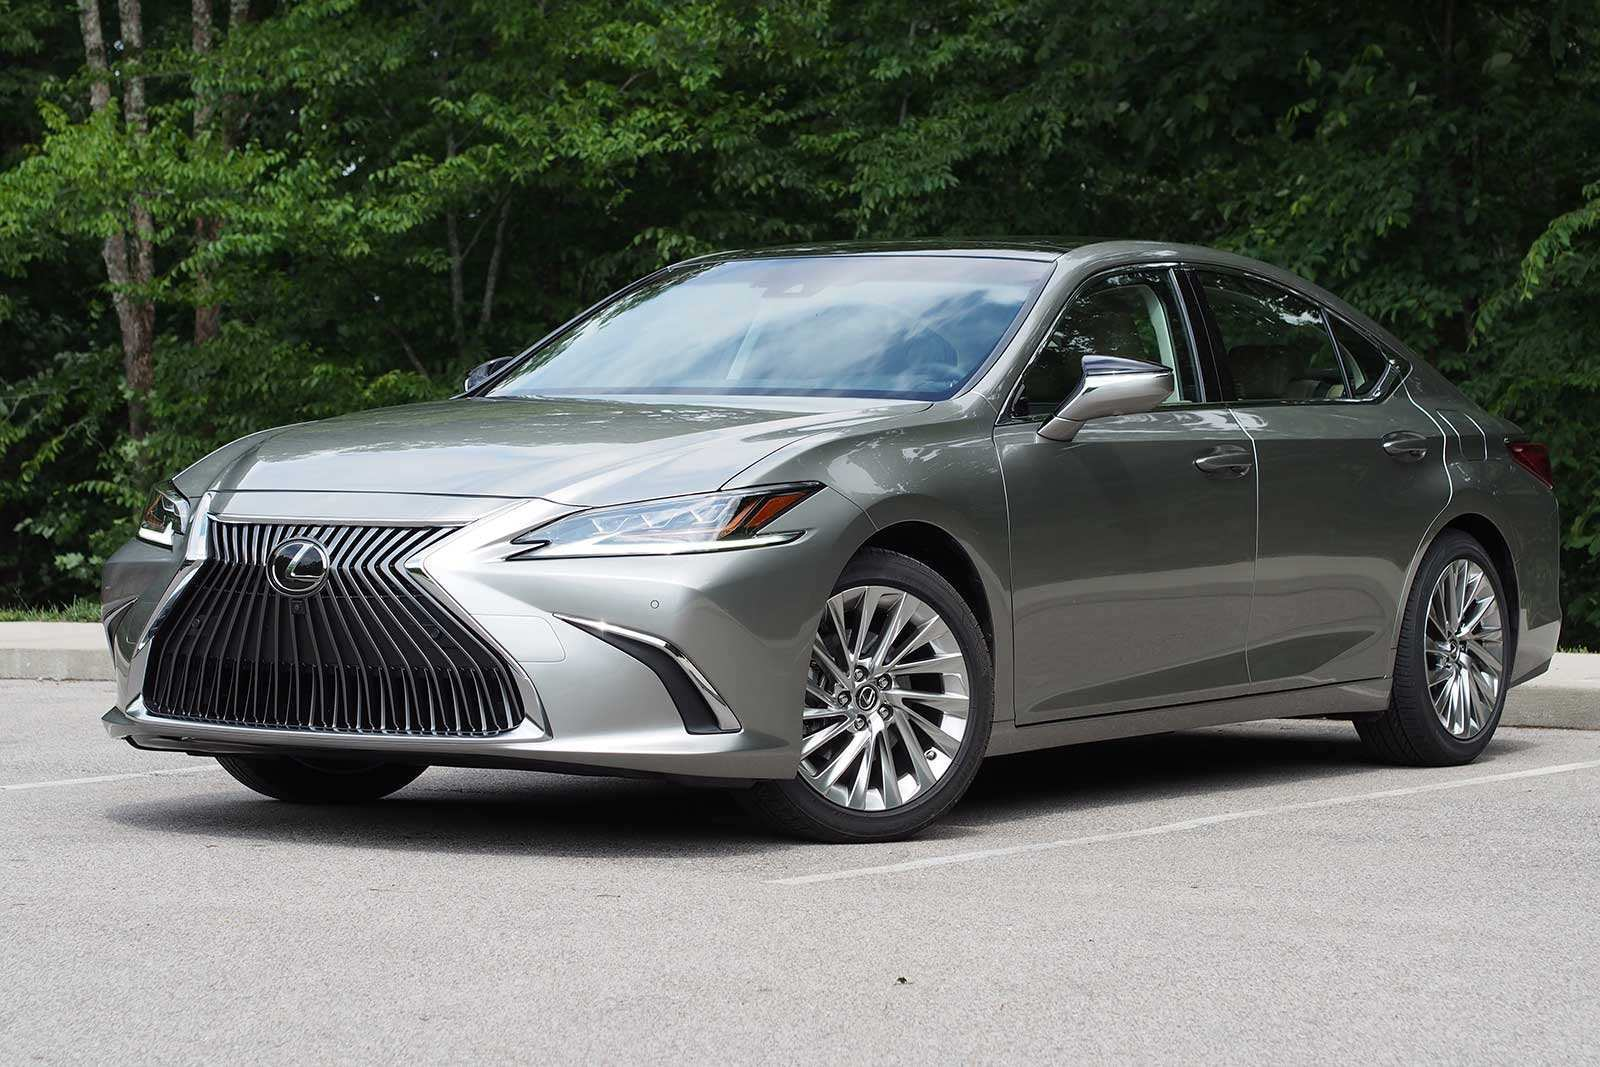 79 All New 2019 Lexus Es 350 Price And Review